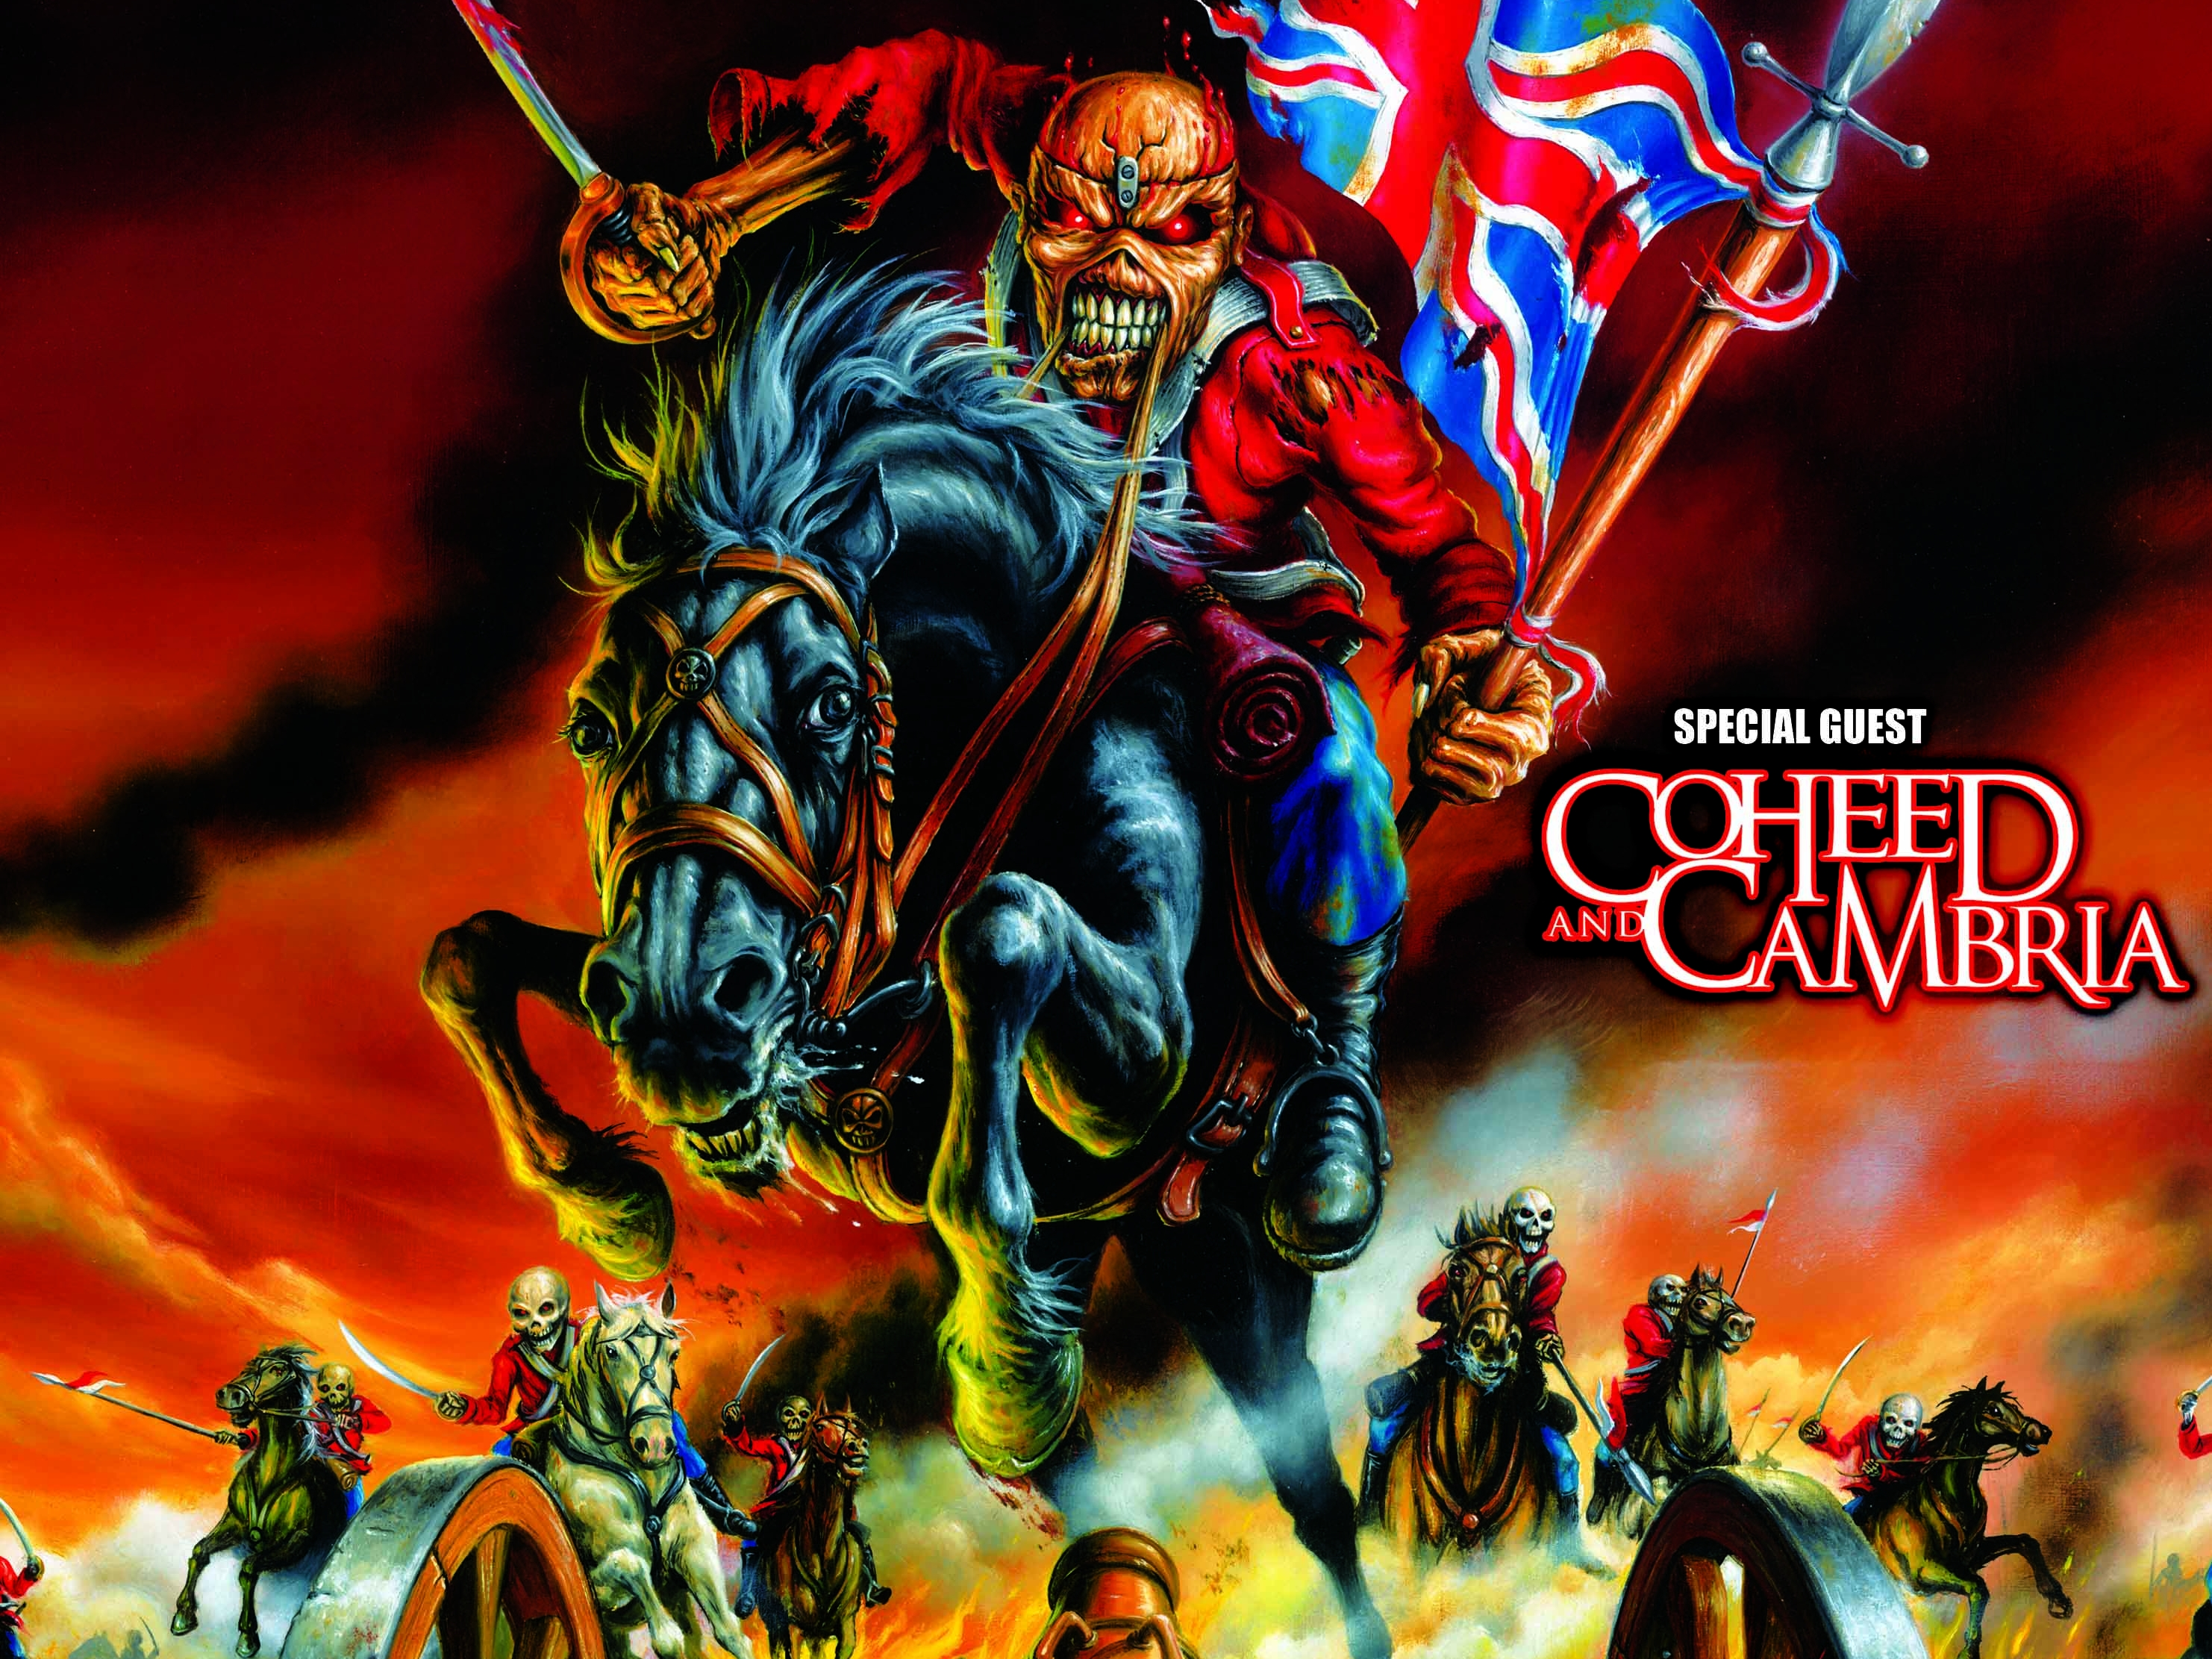 41+] Iron Maiden Wallpaper Downloads on WallpaperSafari